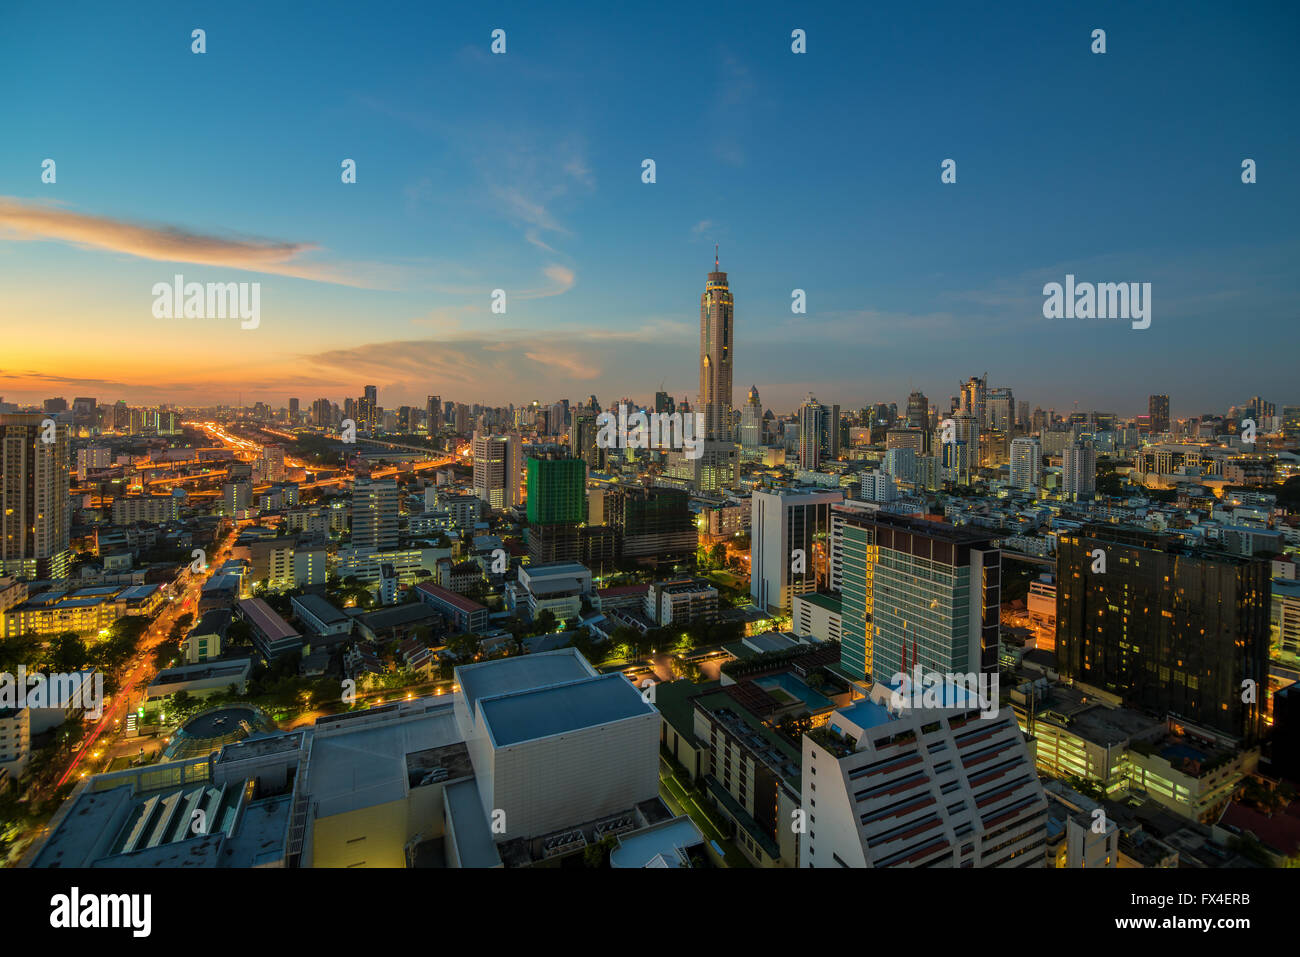 Bangkok city night view with nice sky - Stock Image